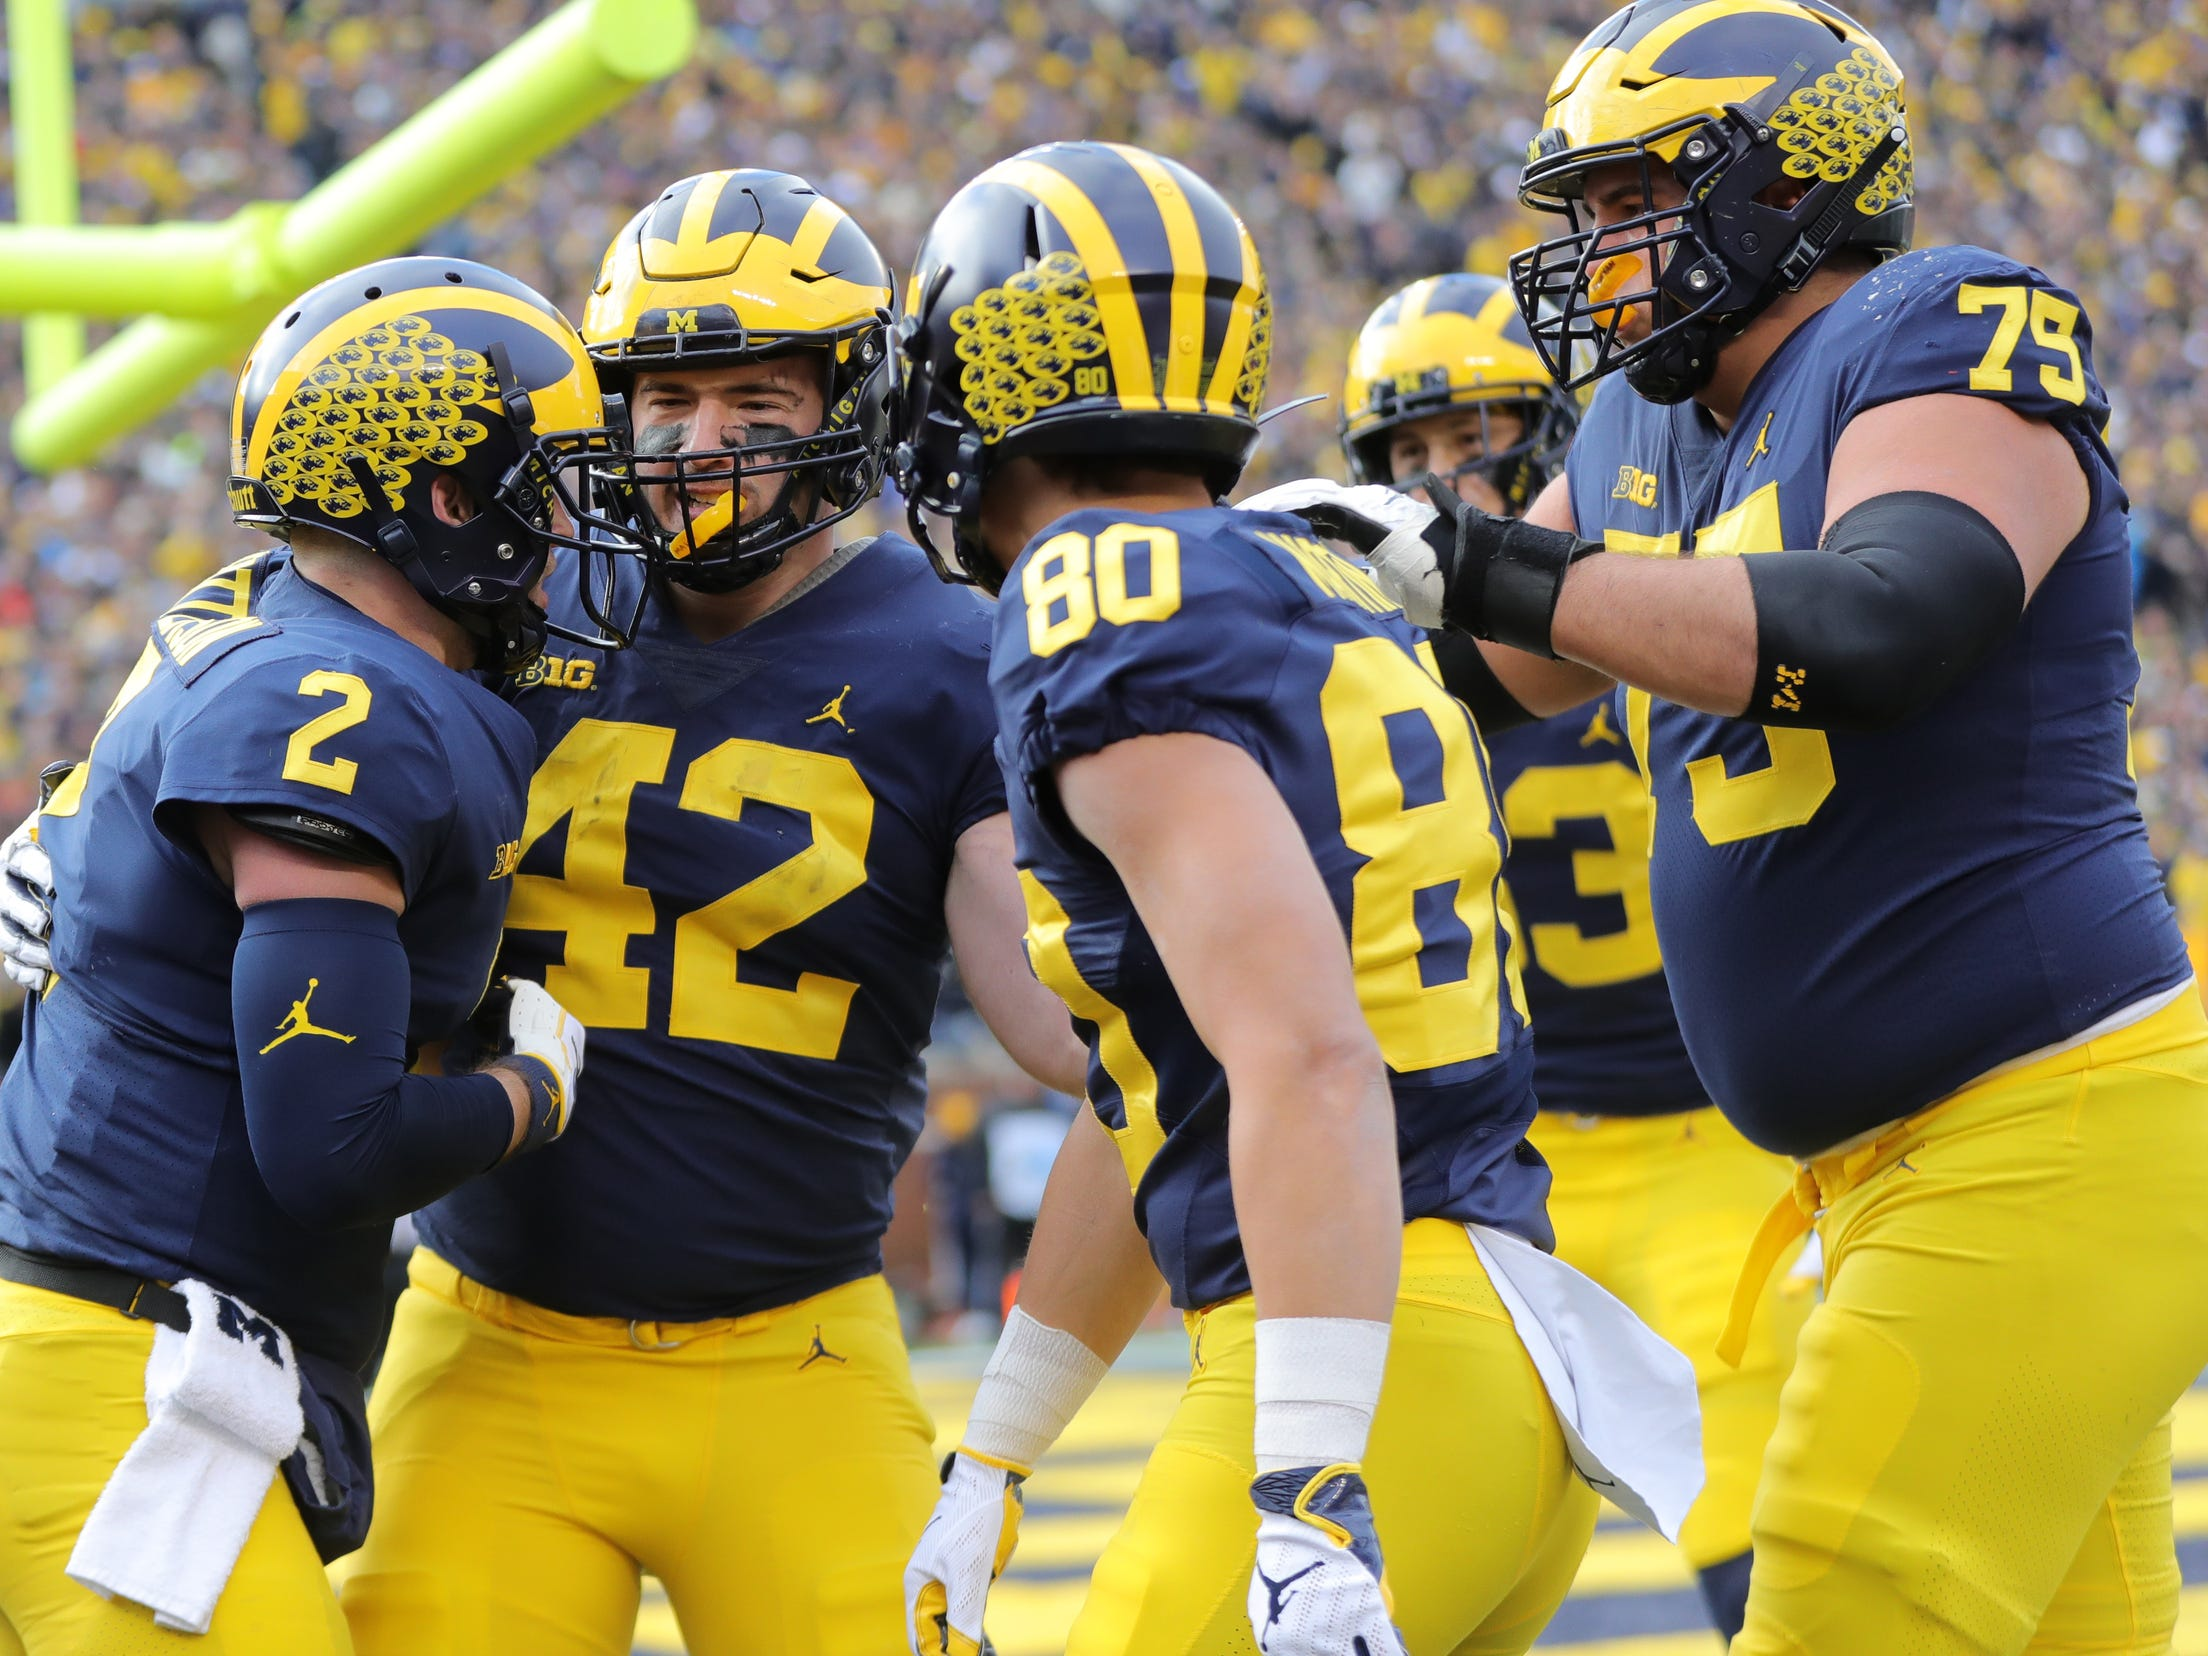 Michigan quarterback Shea Patterson (2) celebrates his TD with Ben Mason, Oliver Martin and Greg Robinson against Penn State during the first half Saturday, November 3, 2018 at Michigan Stadium in Ann Arbor.